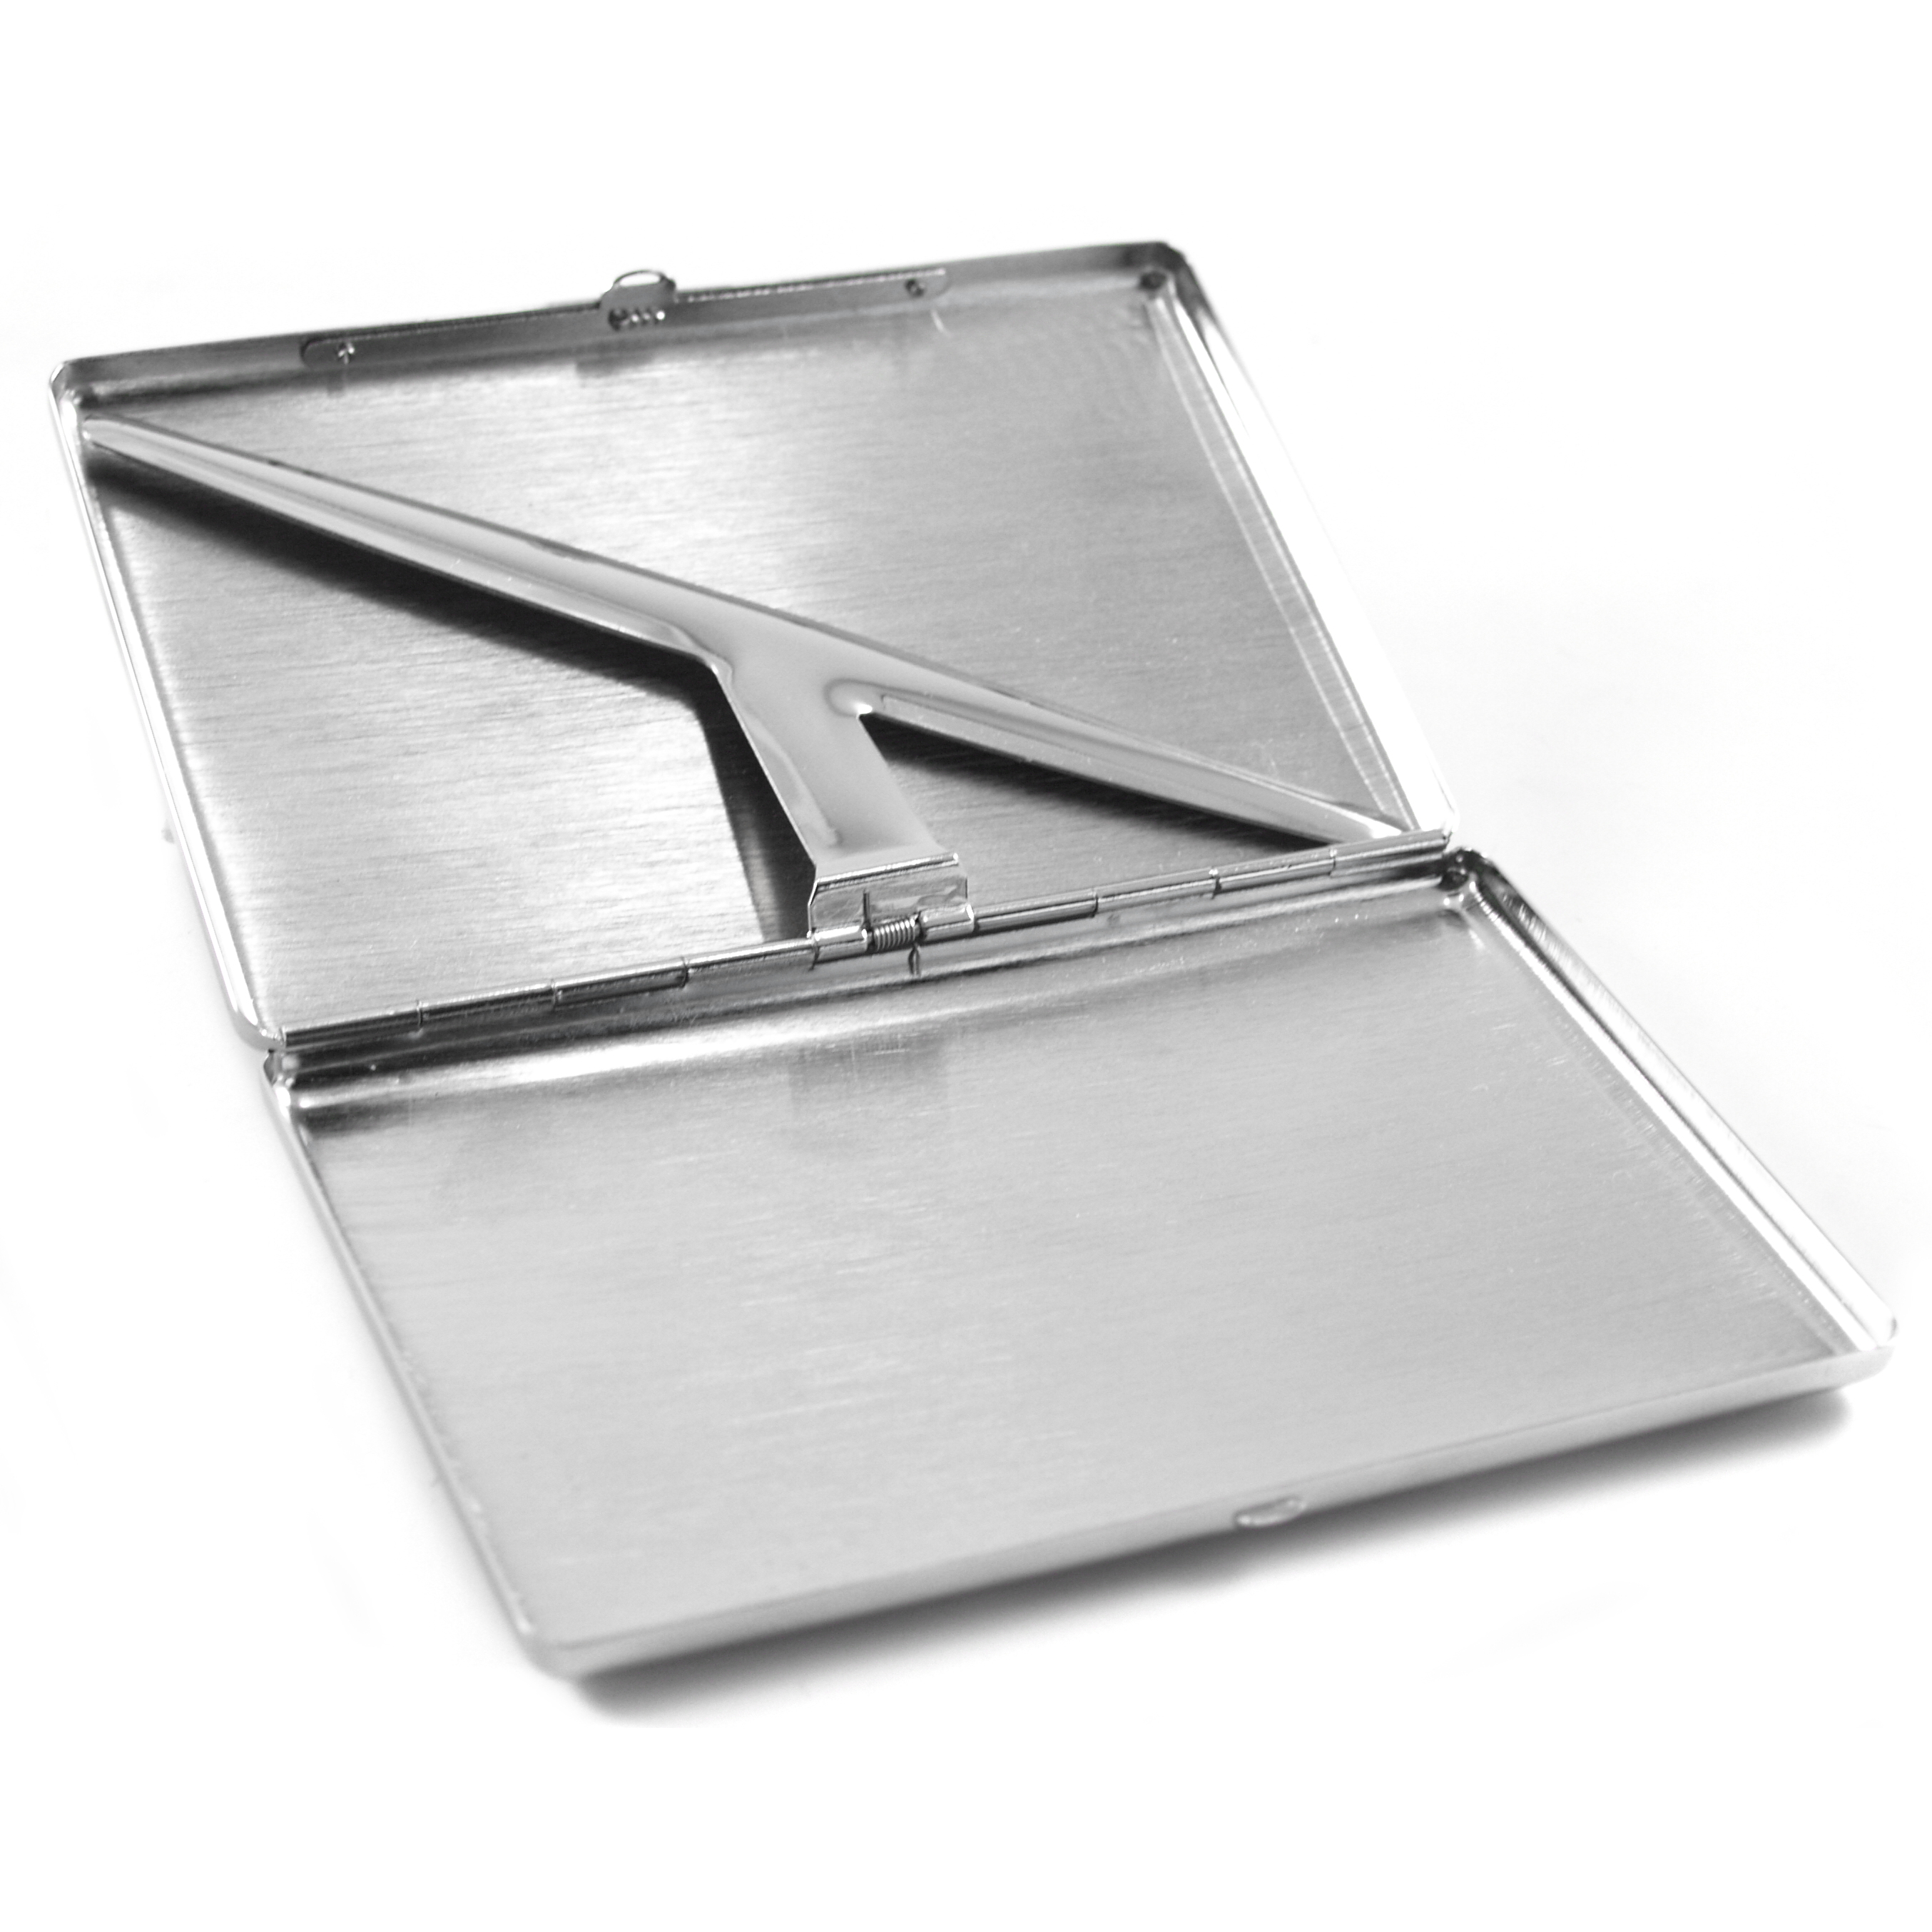 Etched Waves Stainless Steel Cigarette Case